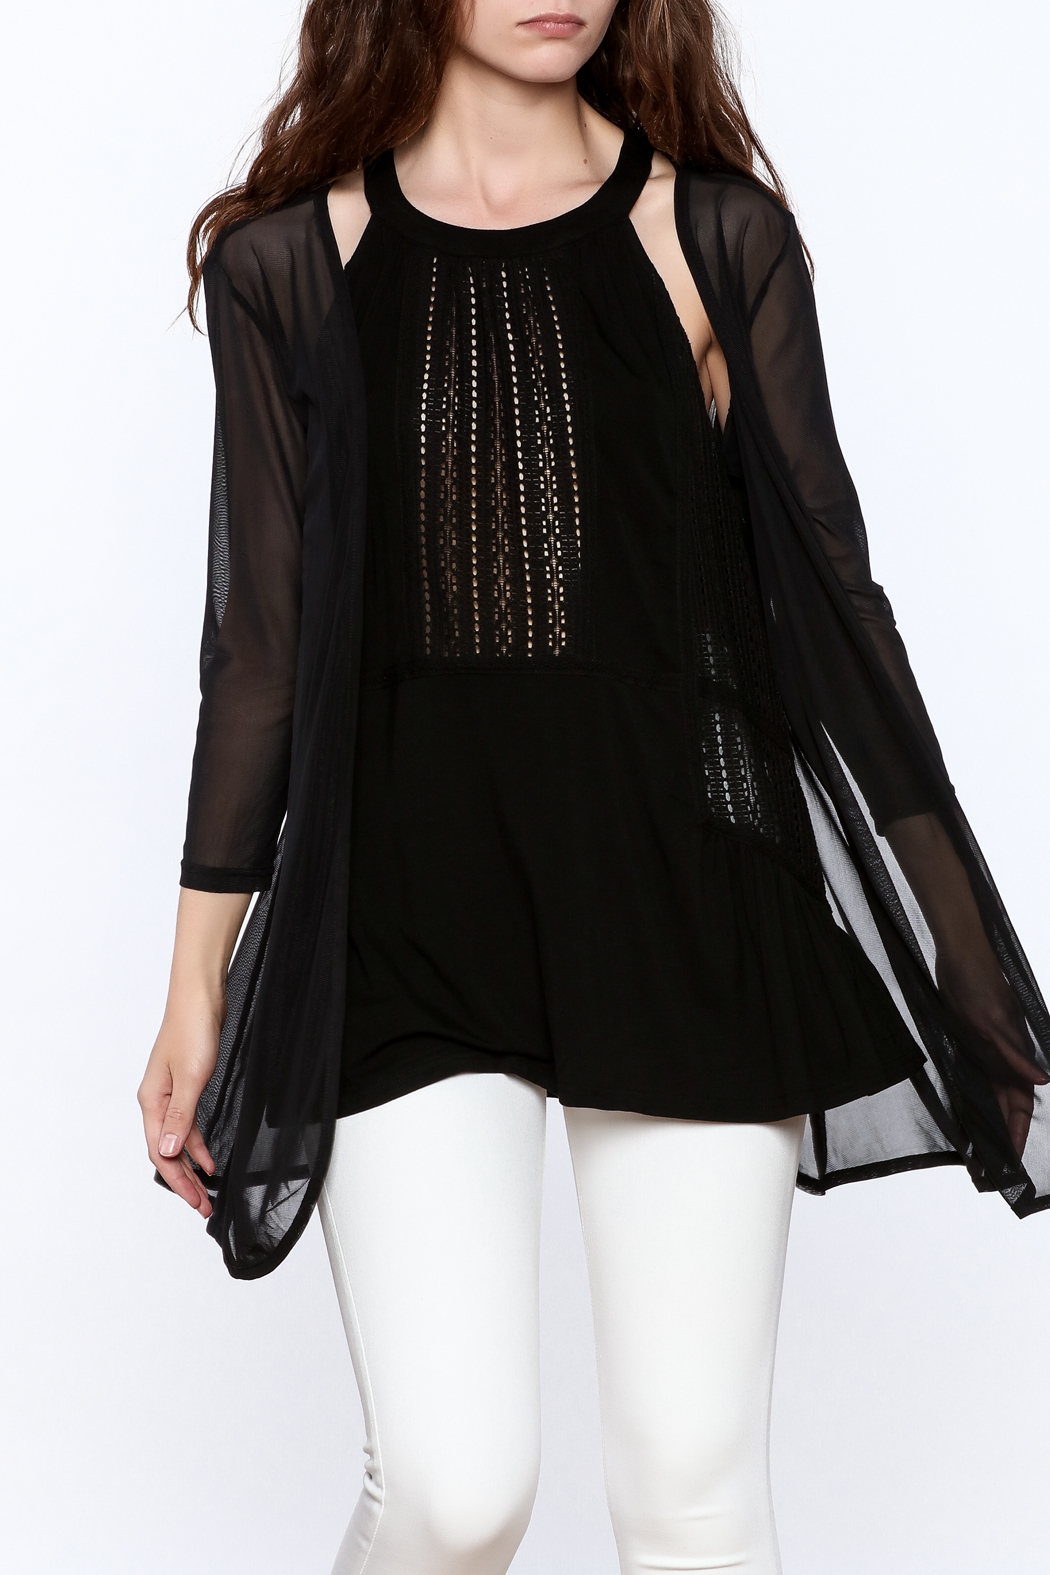 molli Black Mesh Cardigan - Front Cropped Image